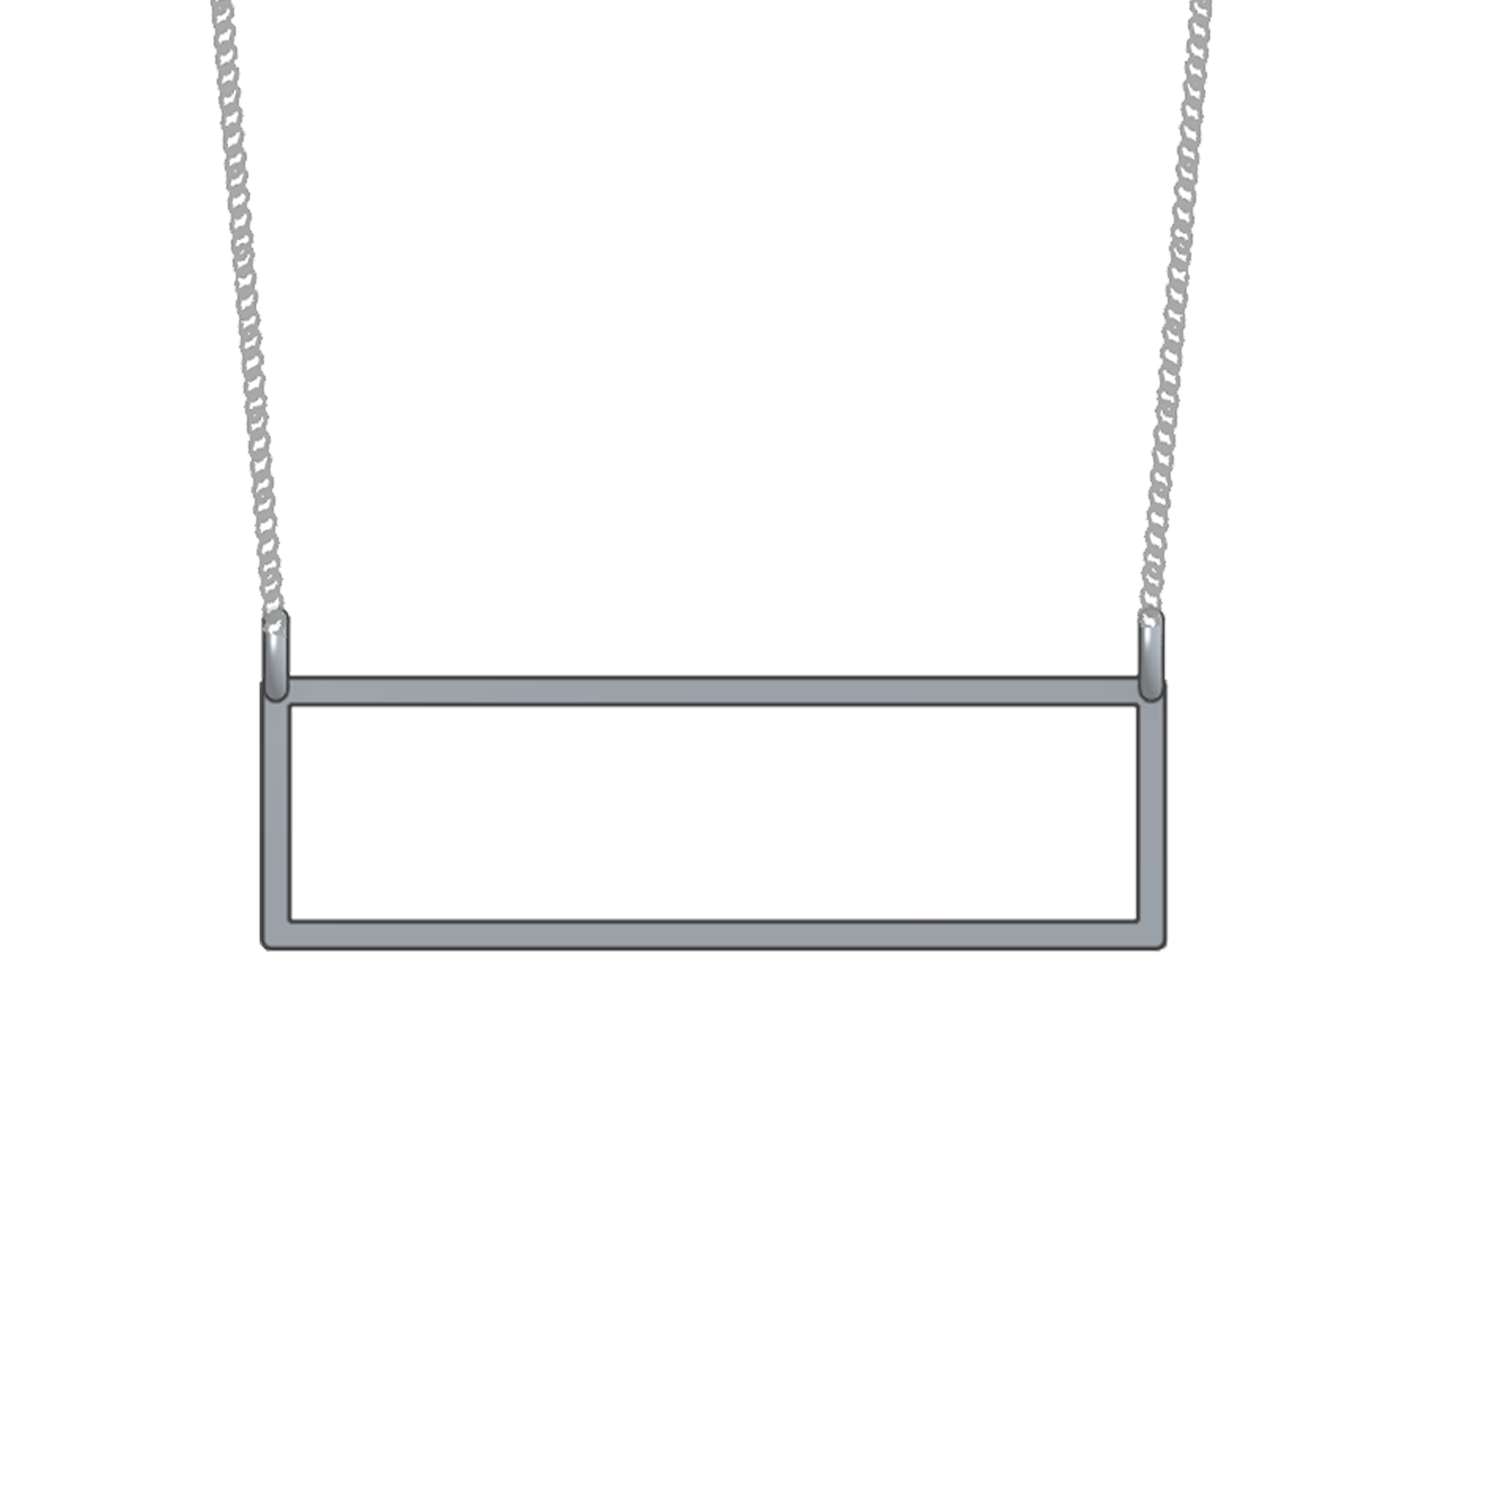 rectangle store rectanglemedusapendantnecklace fashion necklace medusa online versace accessories website necklaces men dmtd jewelry official pendant default for us